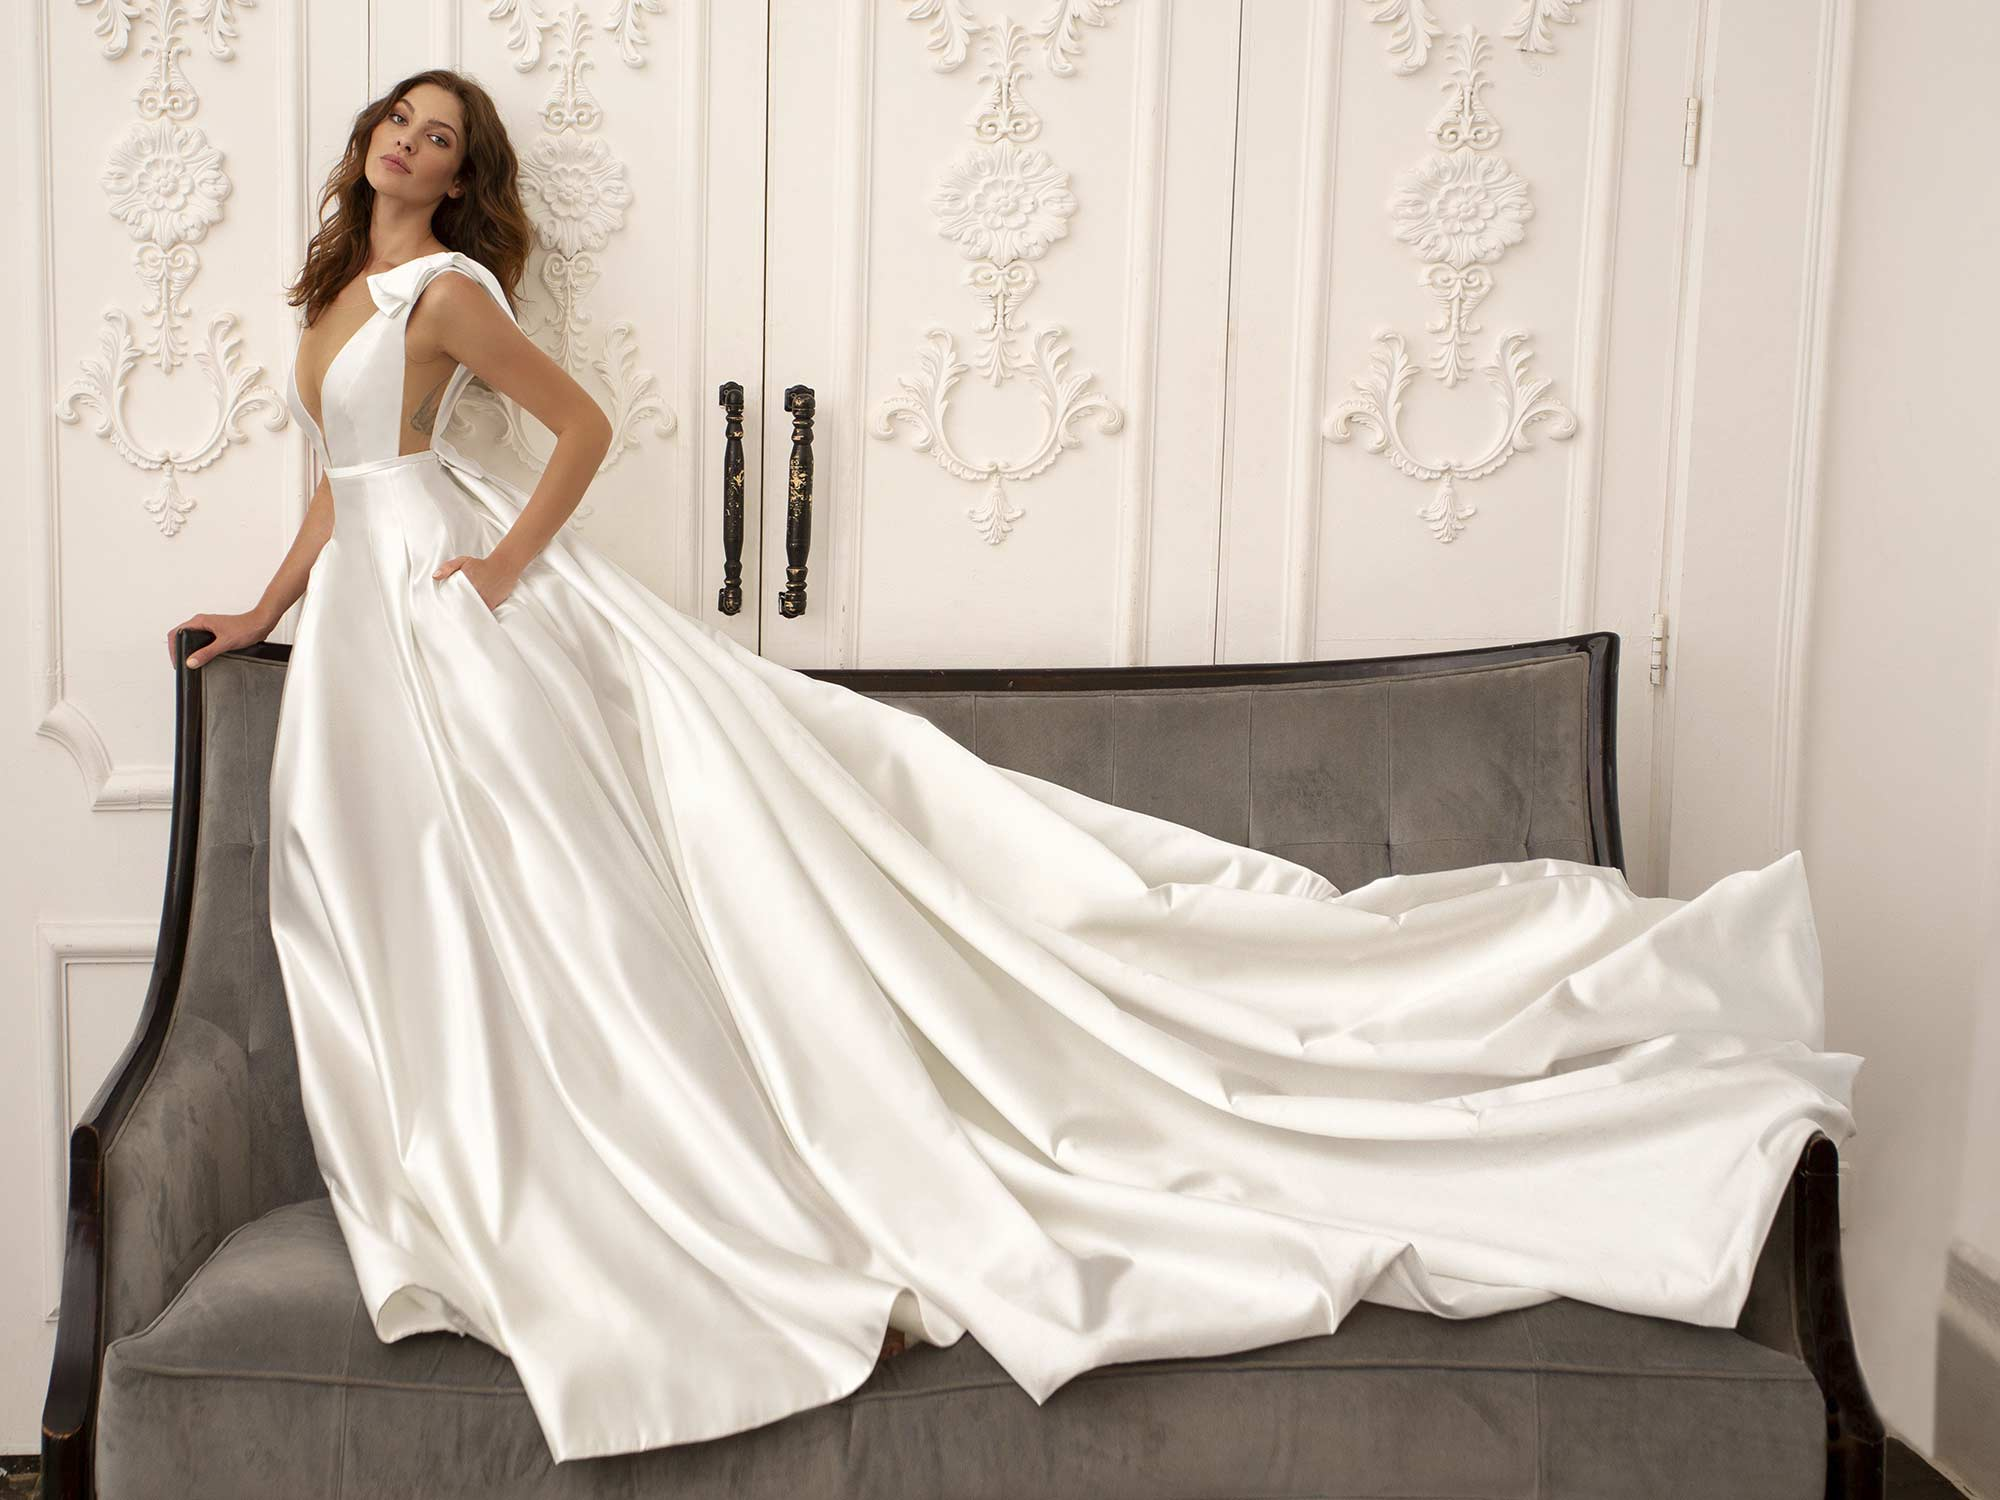 Style #11948, available in ivory, white